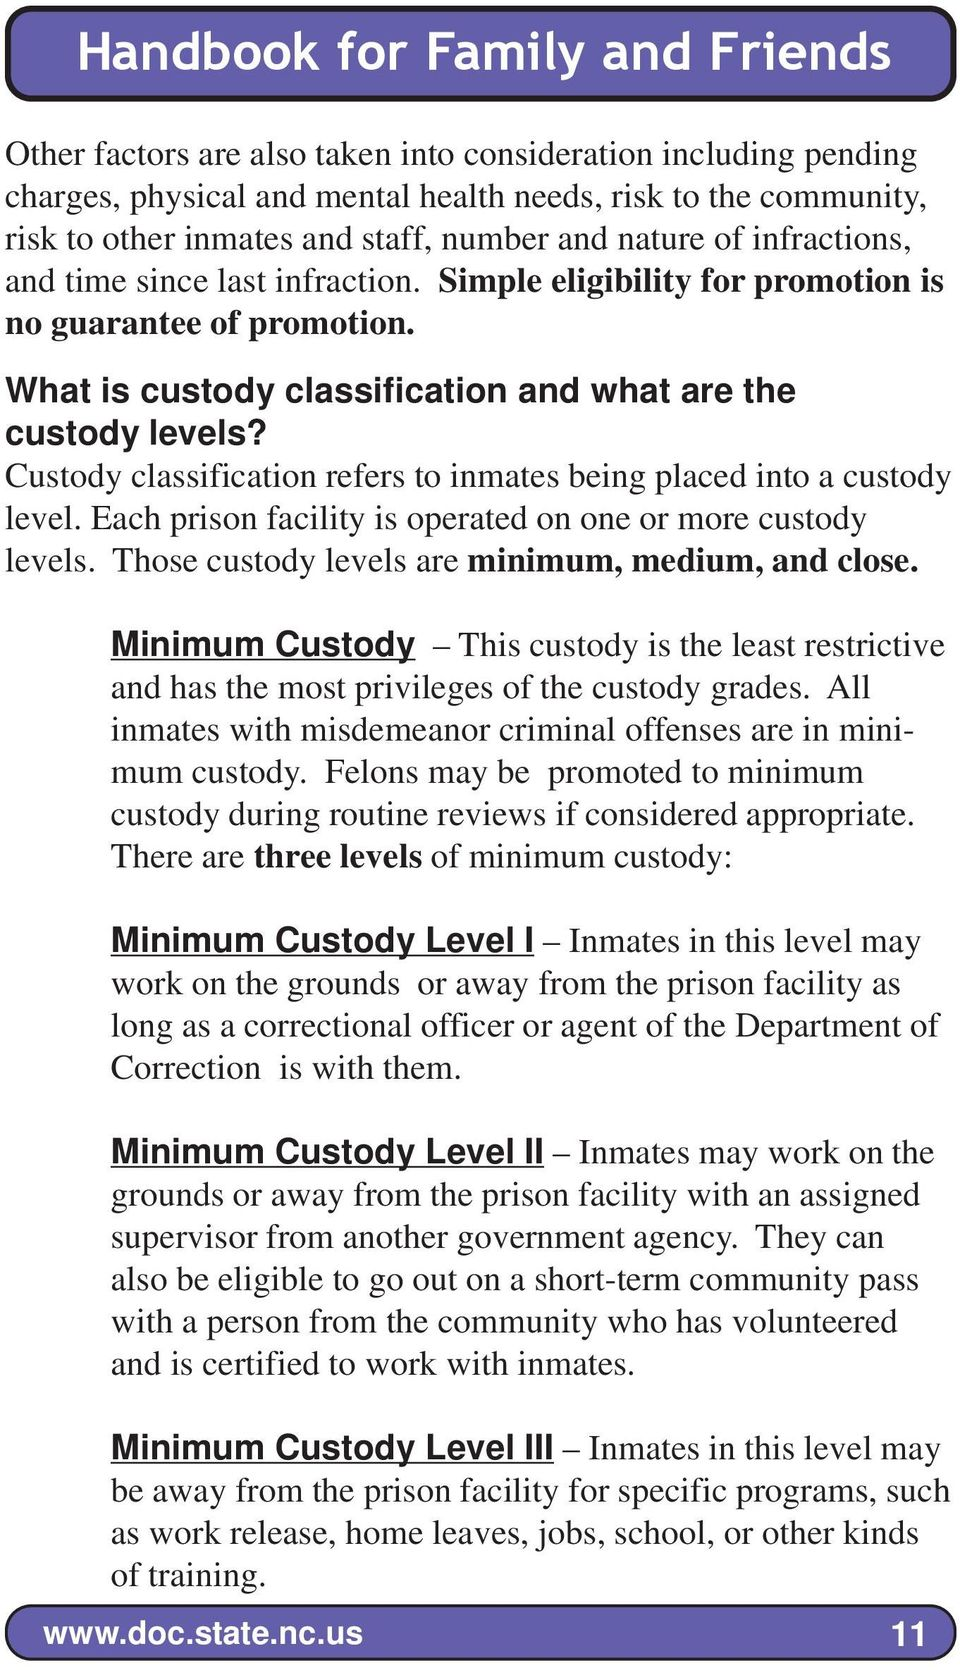 Custody classification refers to inmates being placed into a custody level. Each prison facility is operated on one or more custody levels. Those custody levels are minimum, medium, and close.